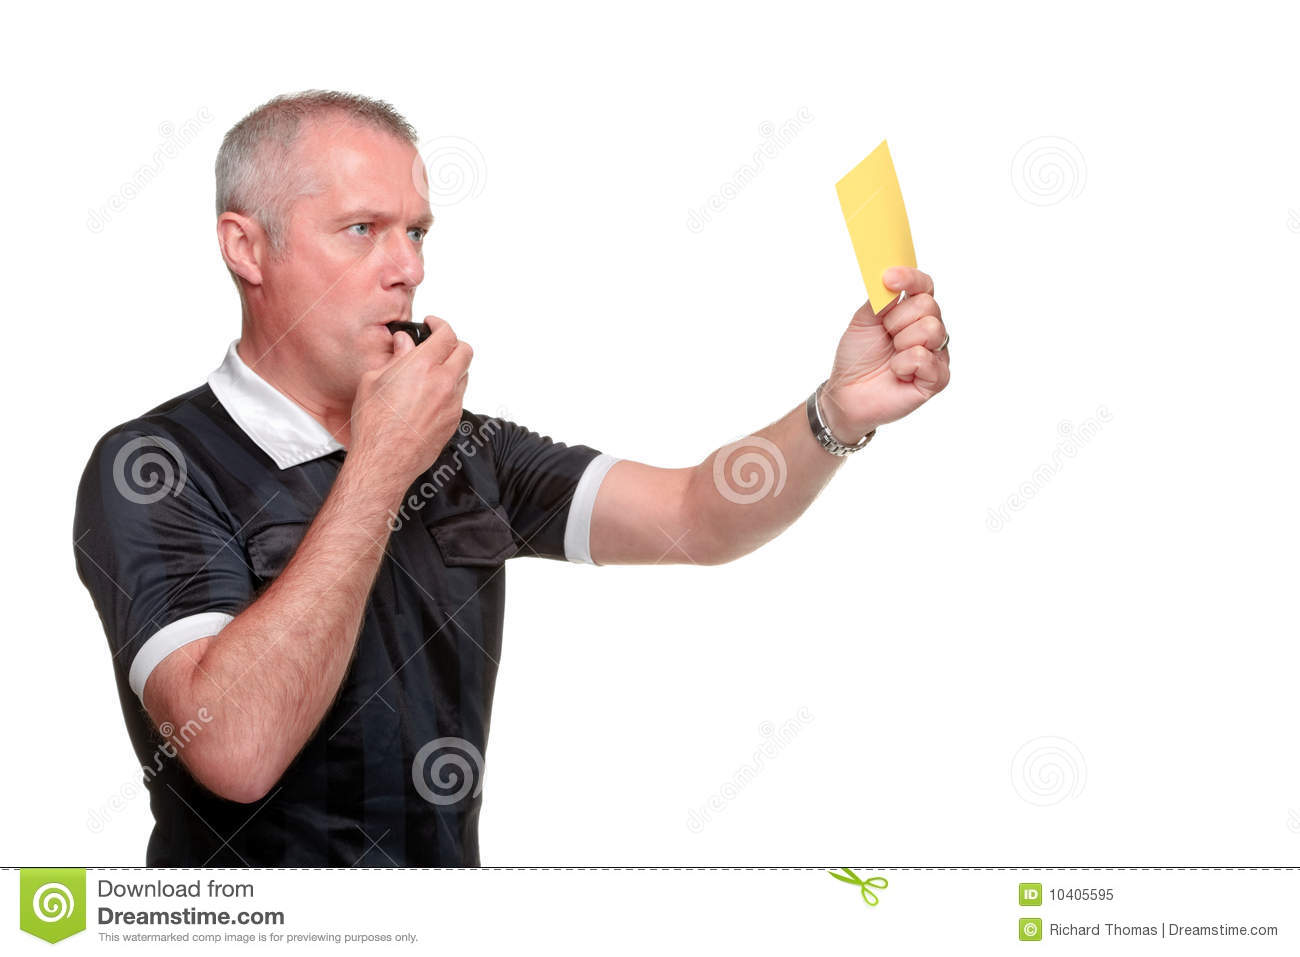 of a referee showing the yellow card isolated on a white background